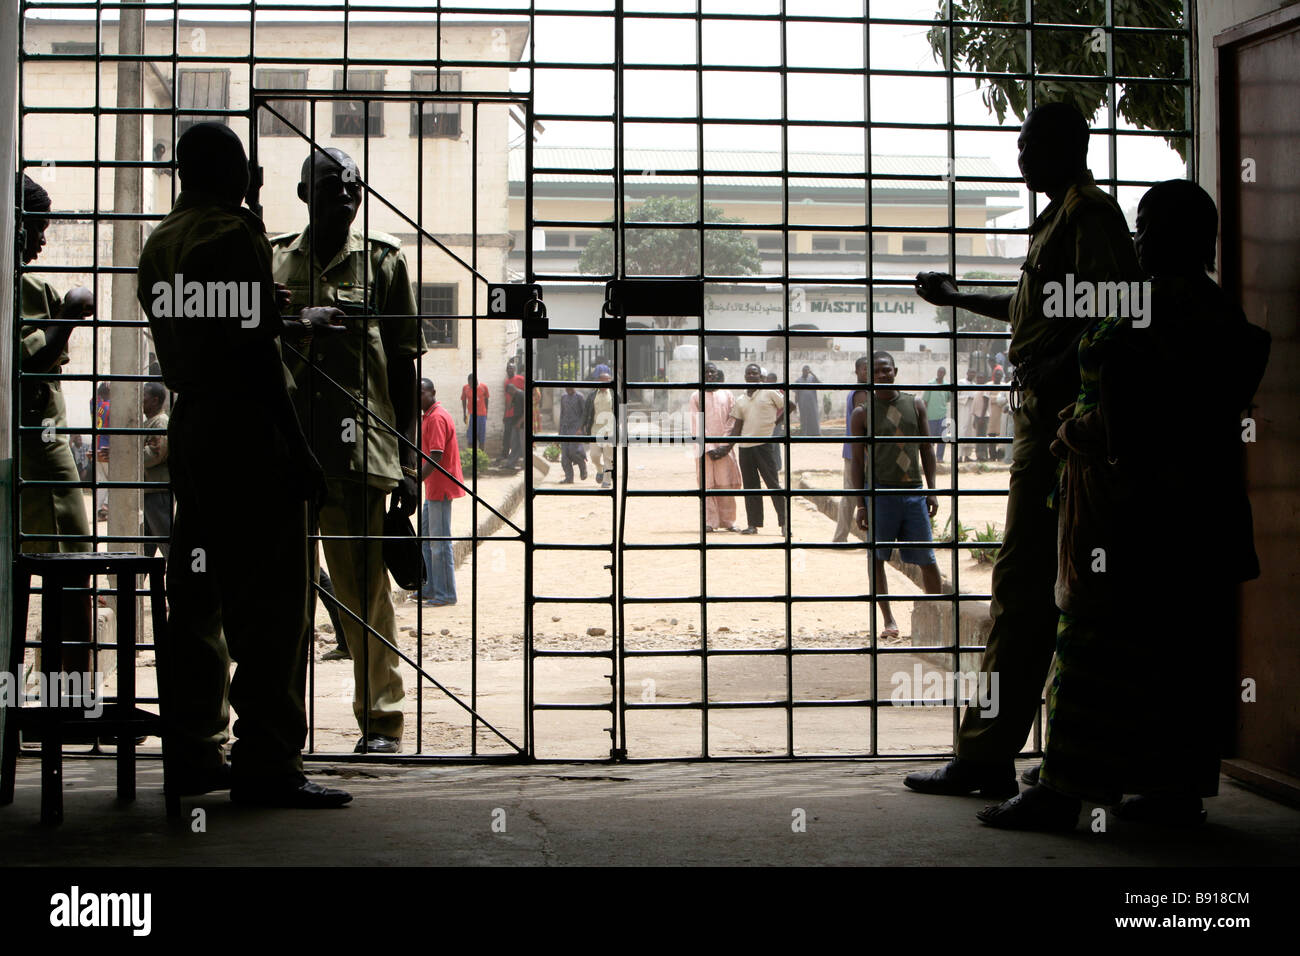 Nigeria: prisonners behind bars in the prison of Jos - Stock Image